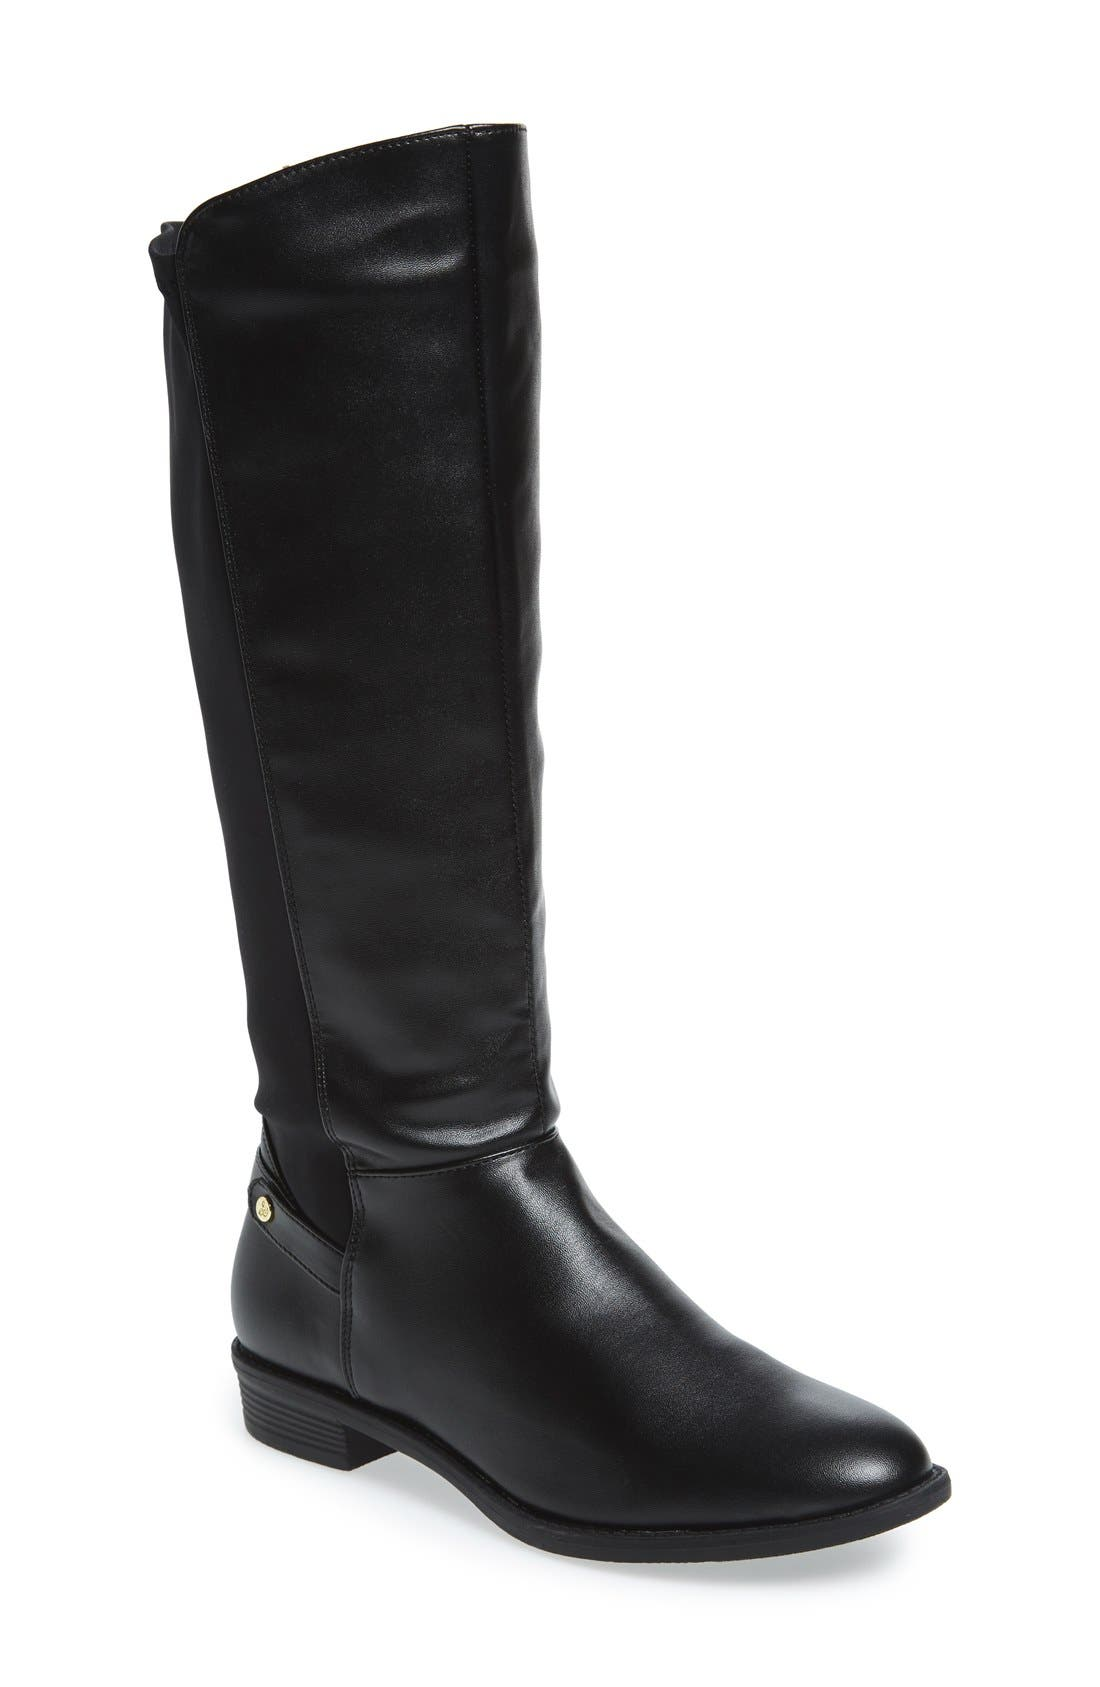 Alternate Image 1 Selected - Sam Edelman 'Pia Lillian' Riding Boot (Toddler, Little Kid & Big Kid)